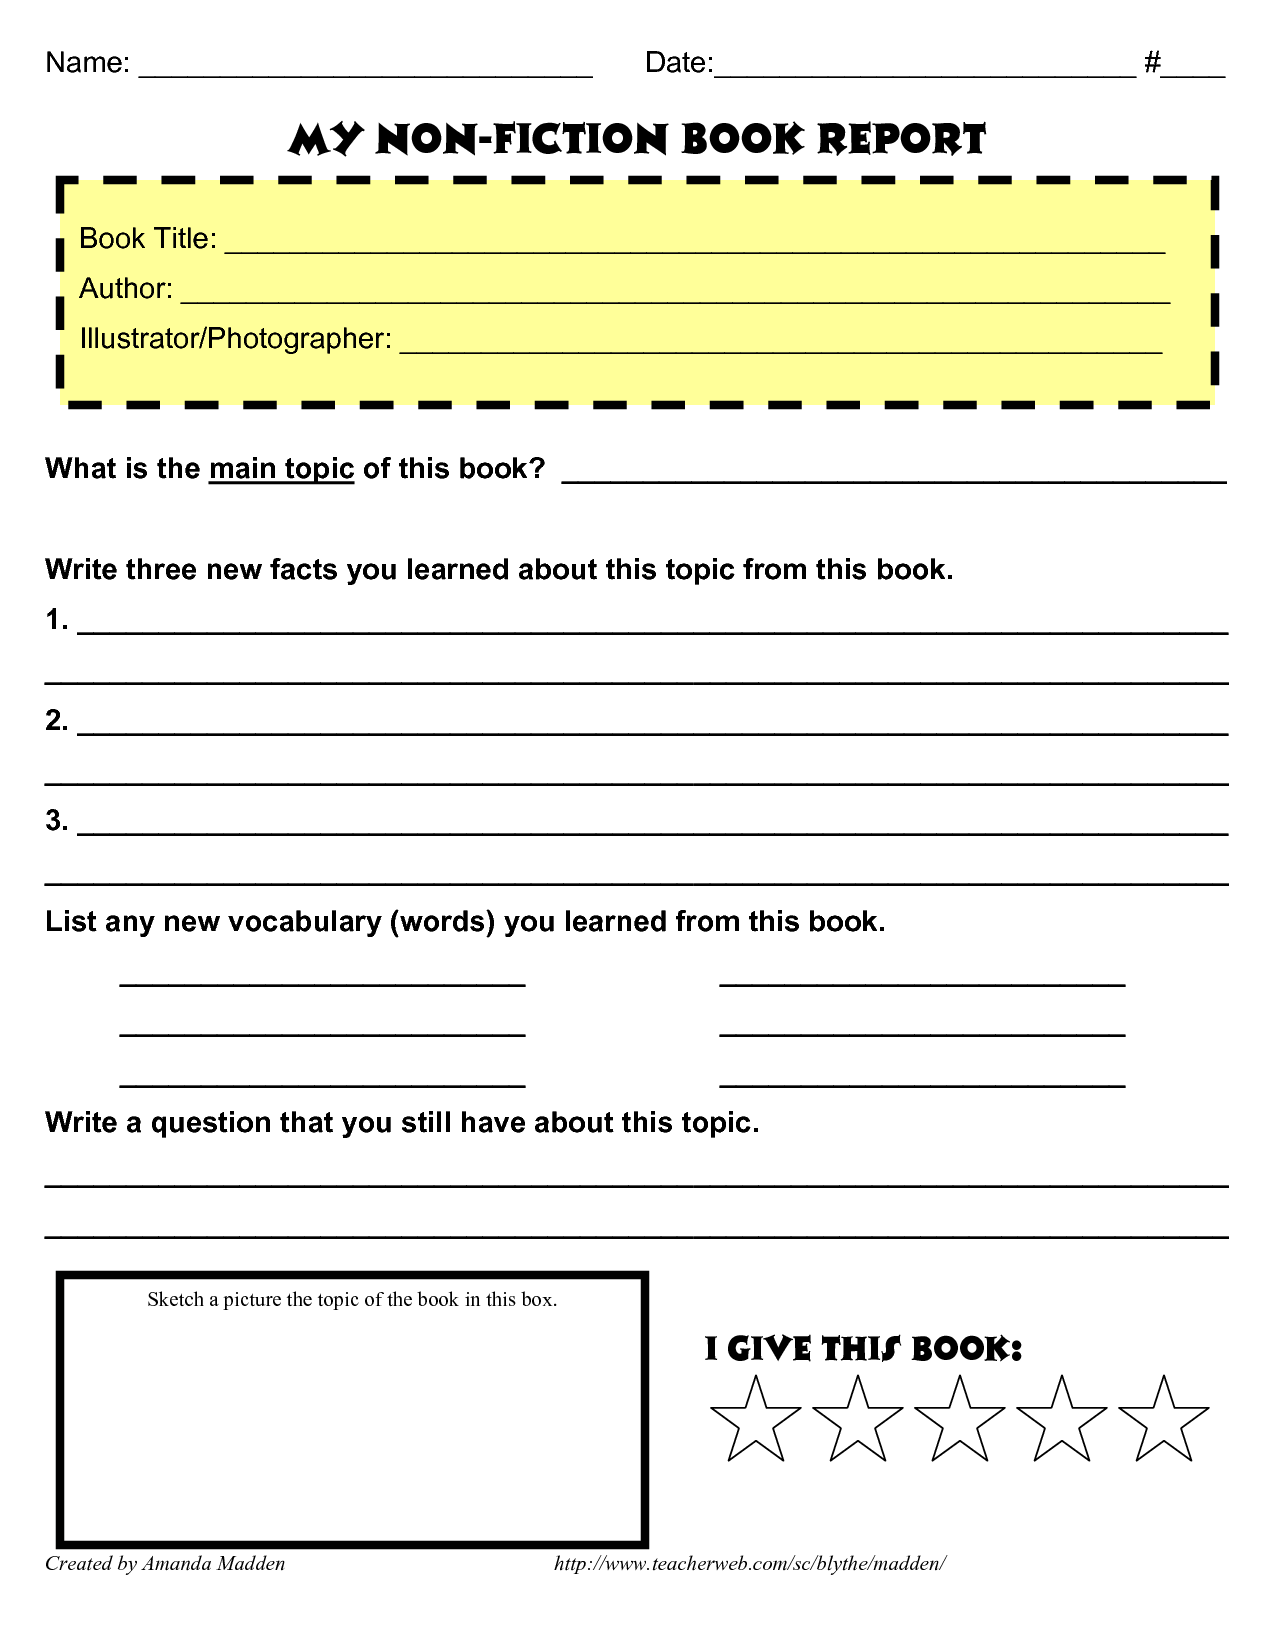 Template For A Book Report payslip format in word – School Book Report Template